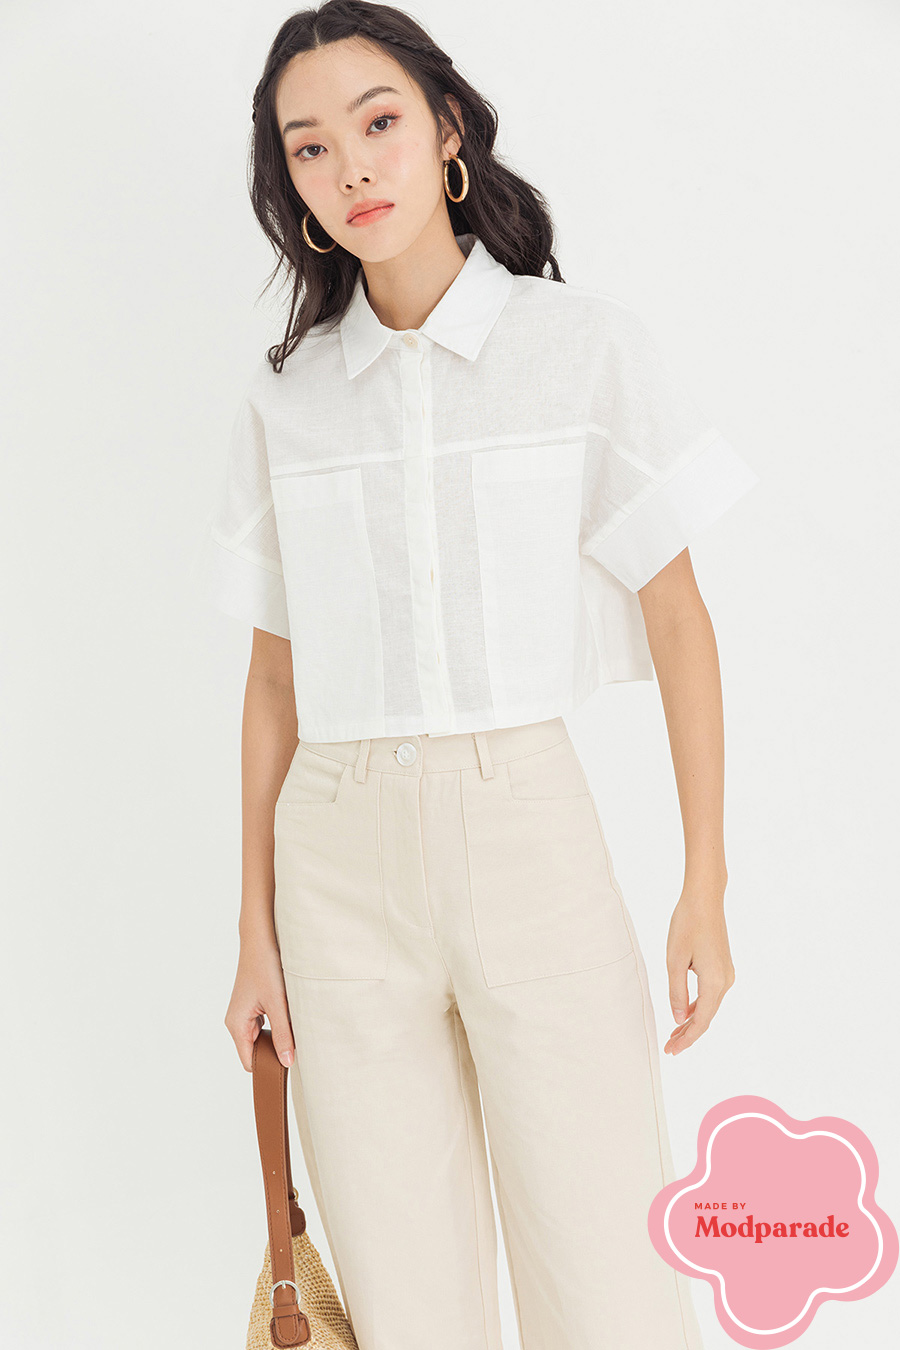 PECHA TOP - IVORY [BY MODPARADE]